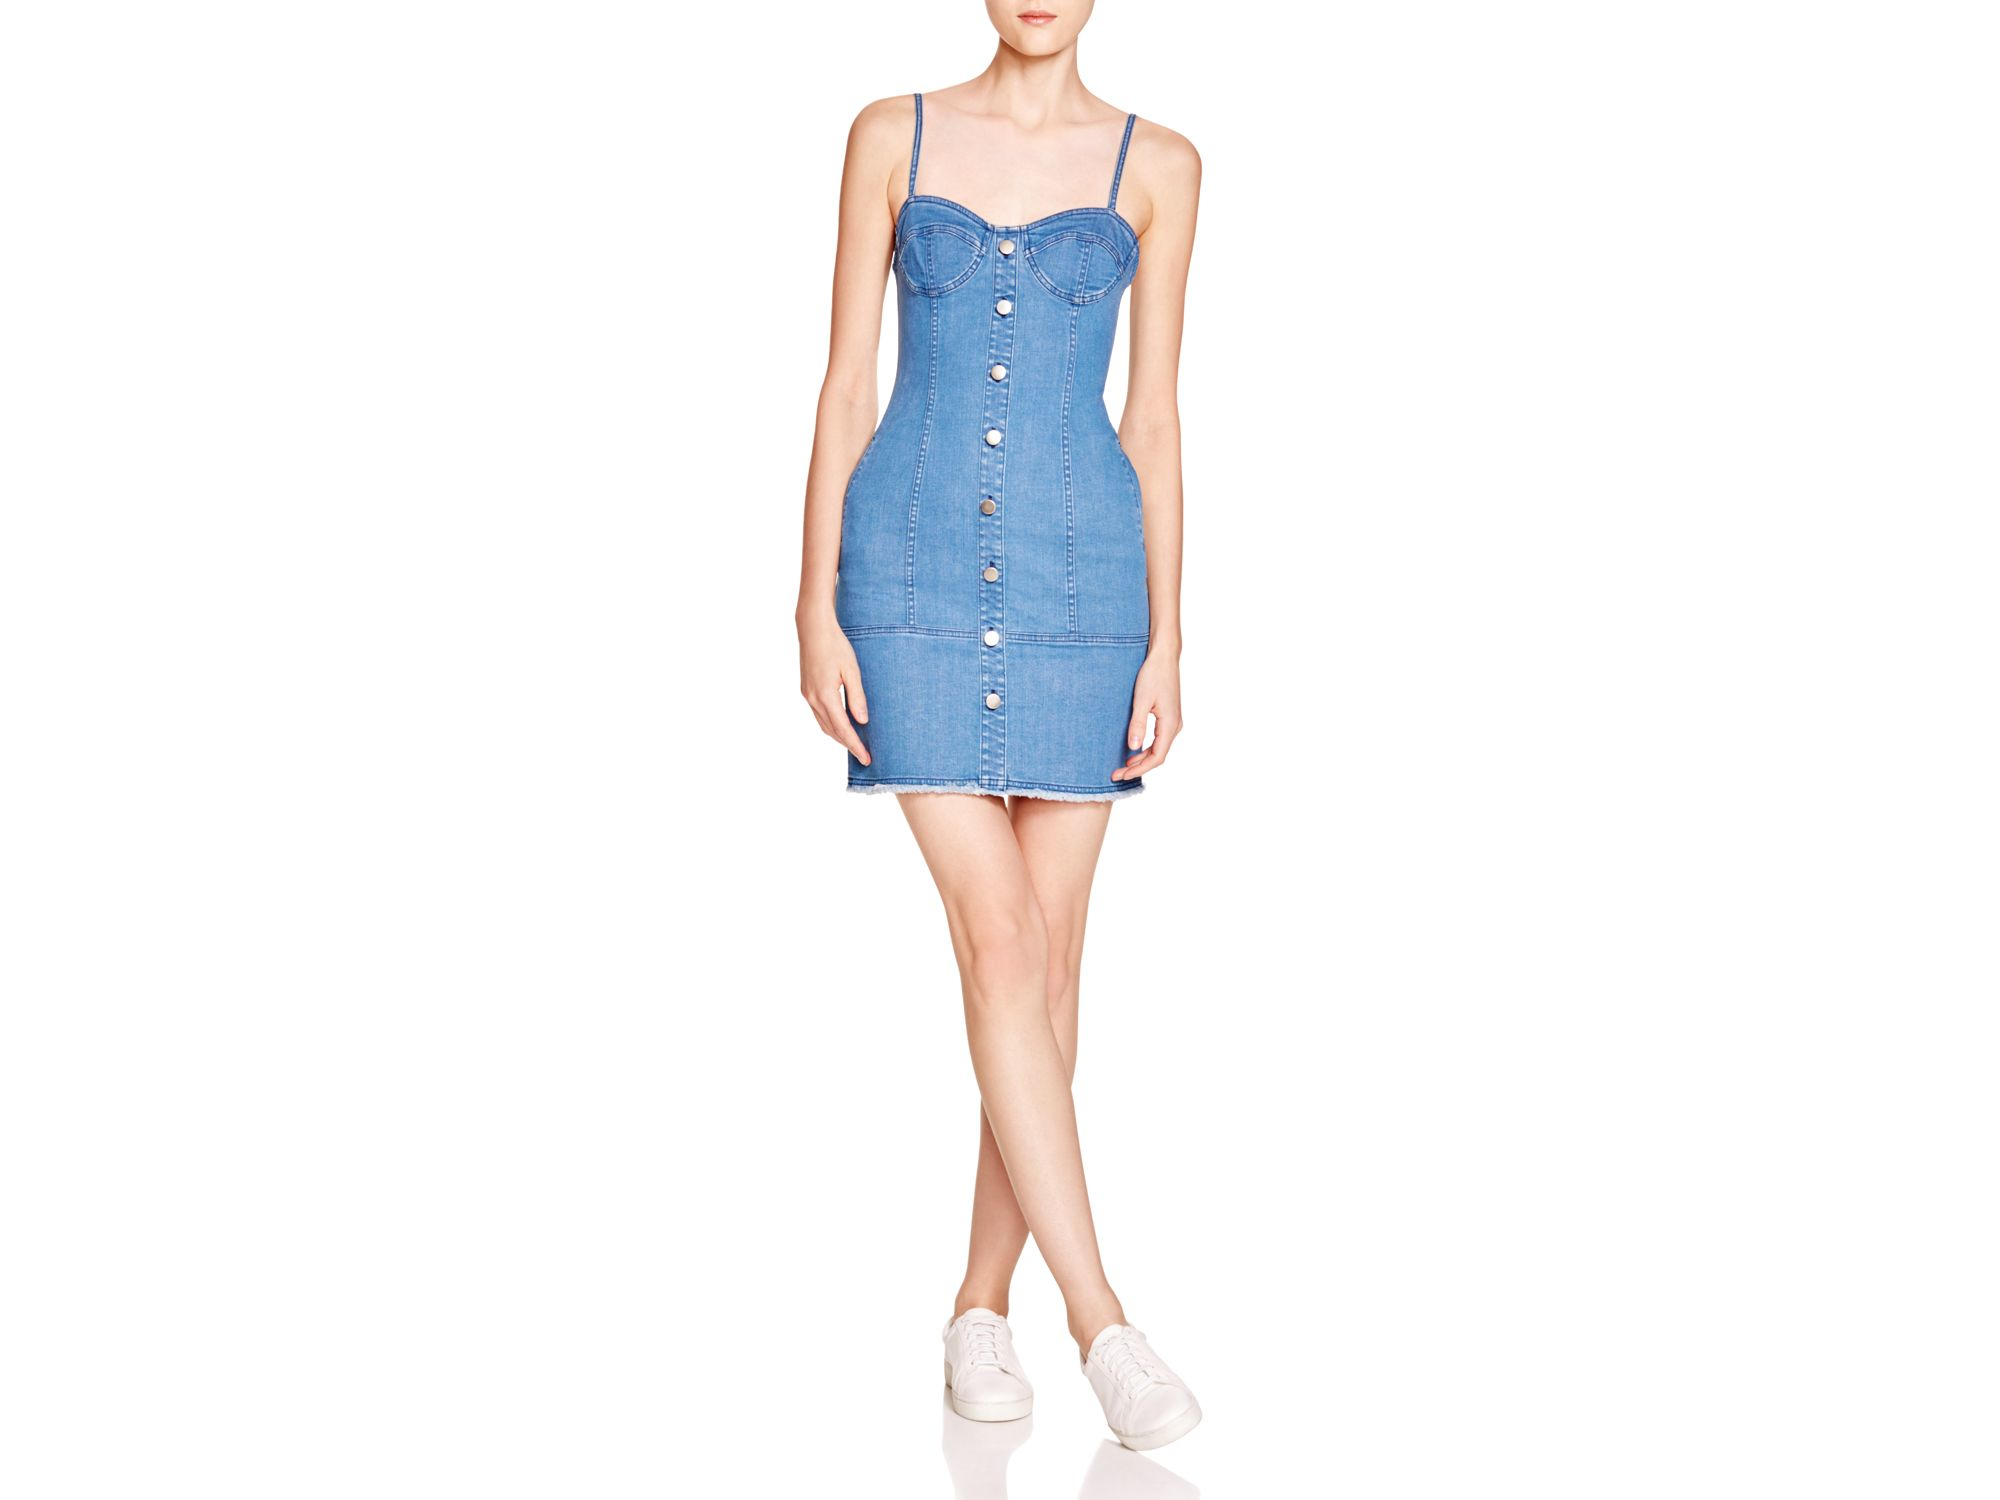 419cc496c6 Gallery. Previously sold at  Bloomingdale s · Women s Denim Dresses ...